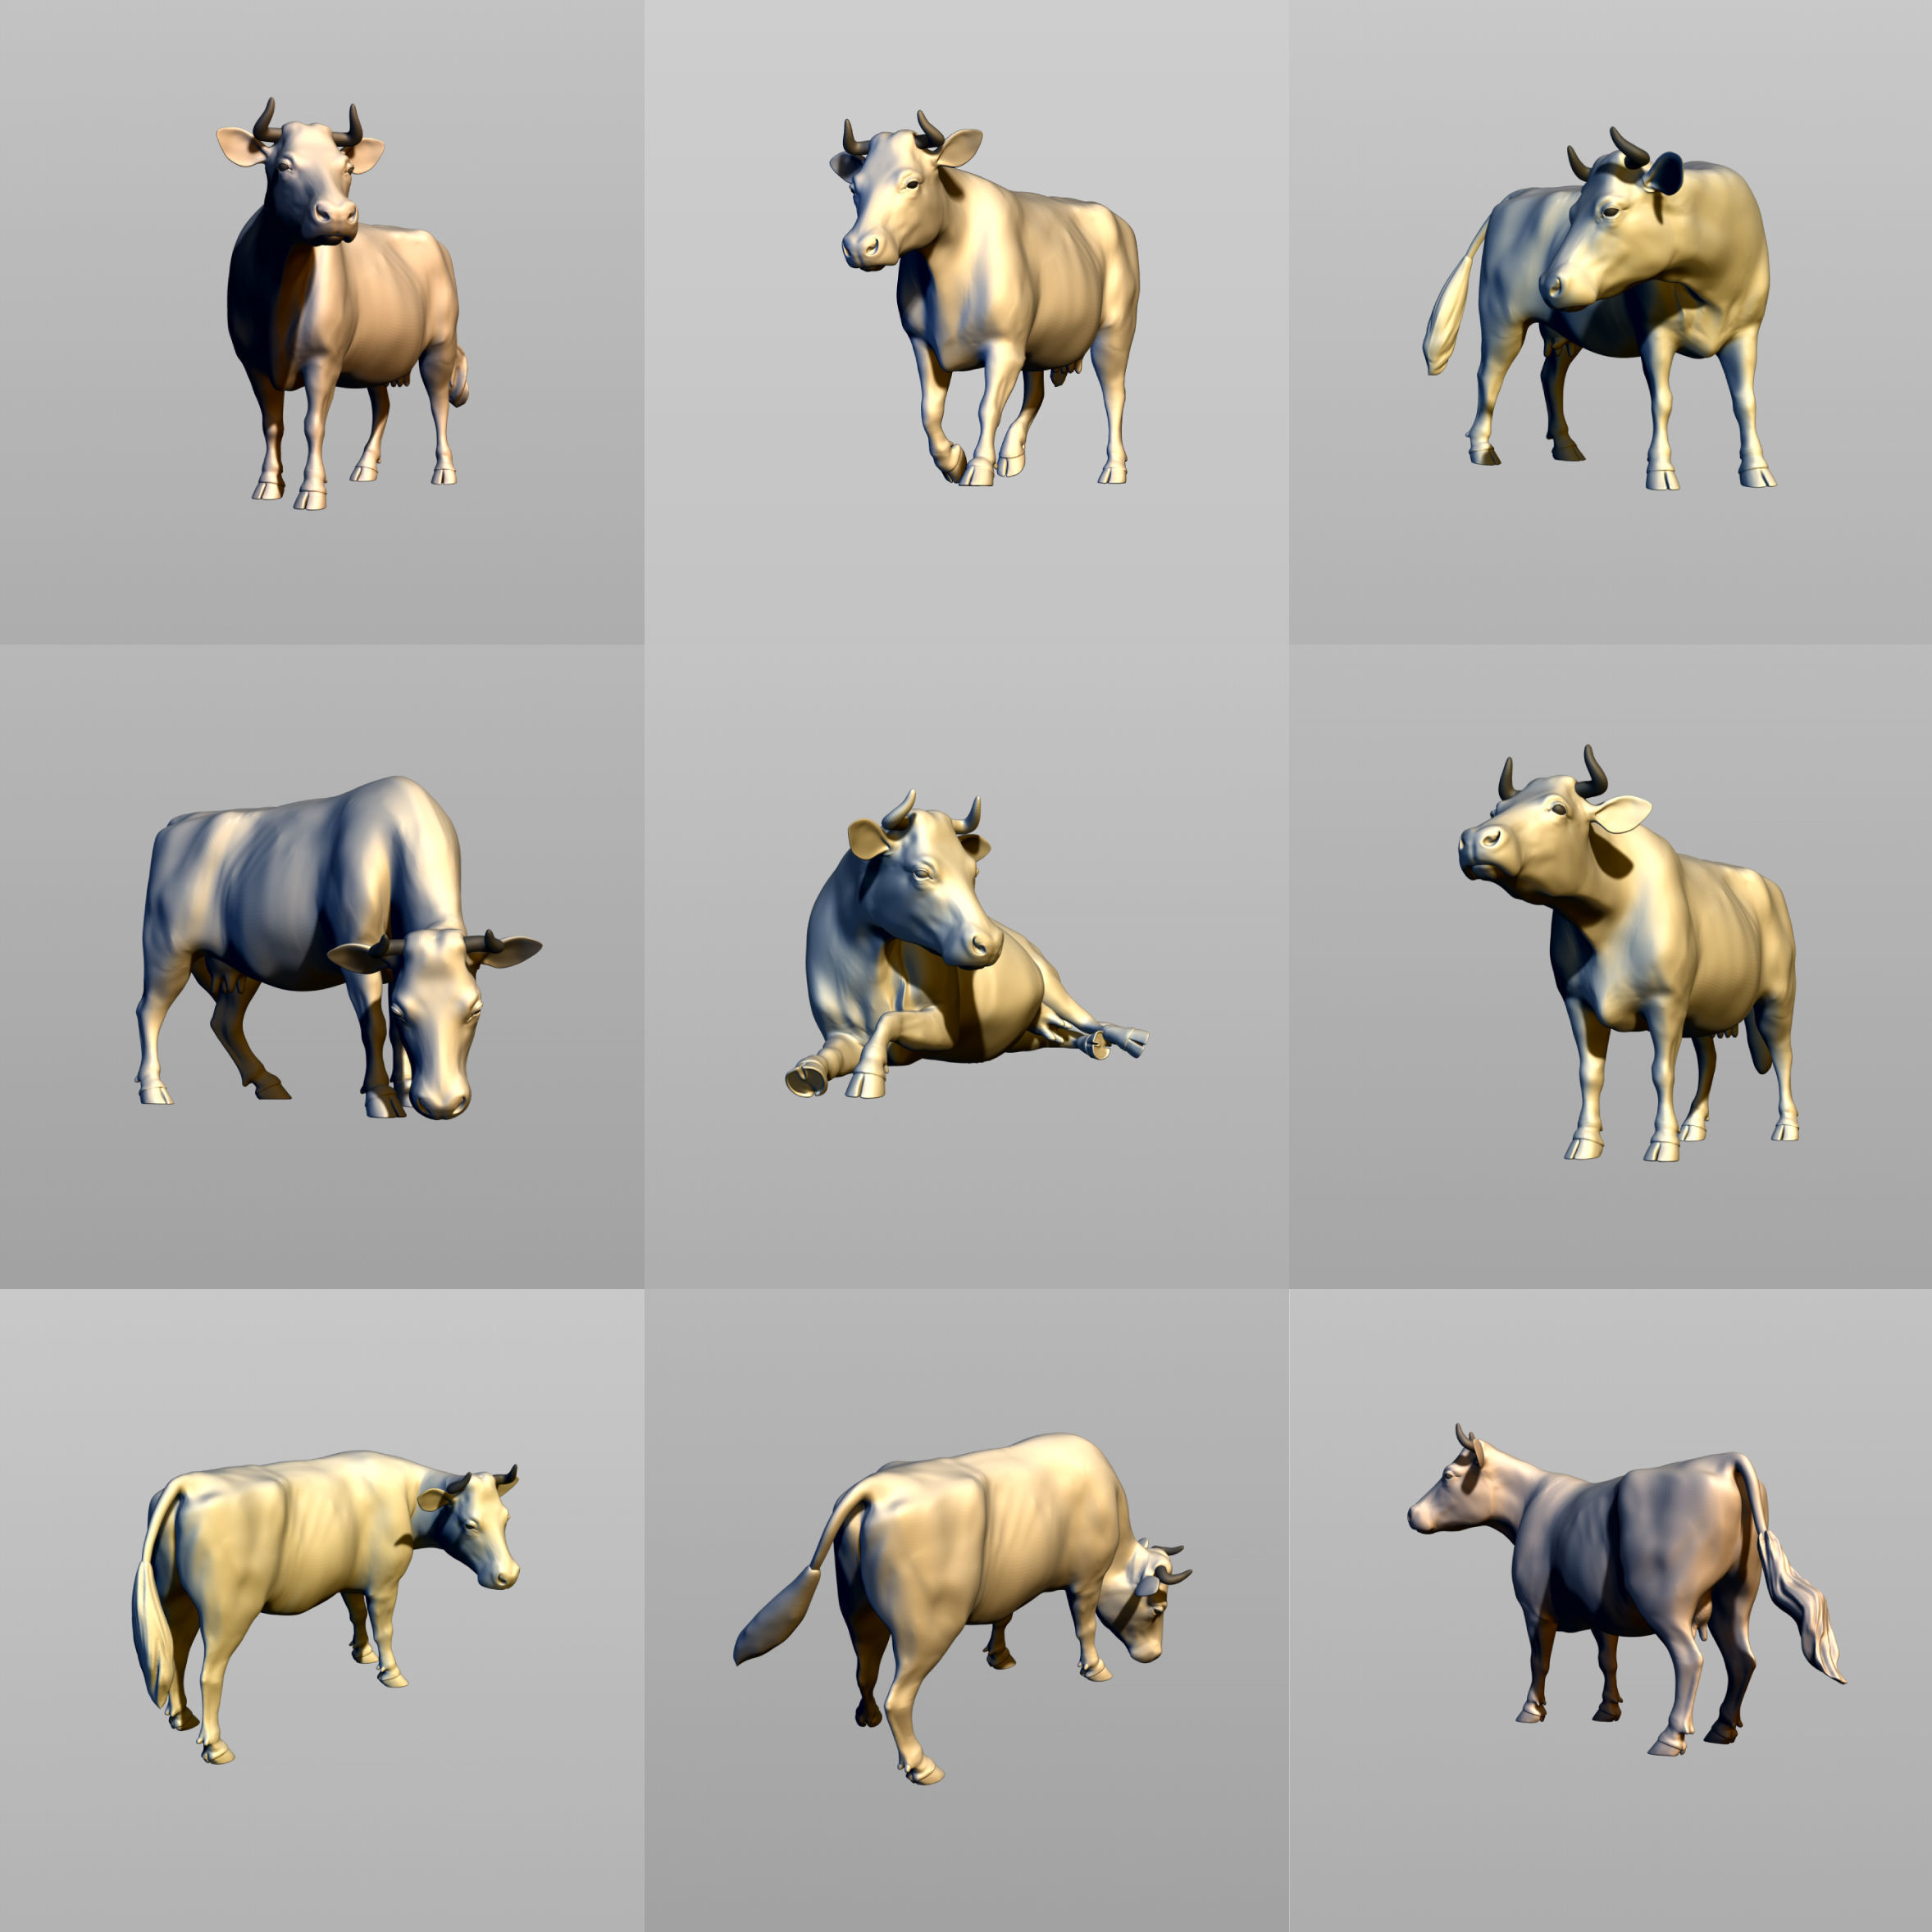 Cows in six poses